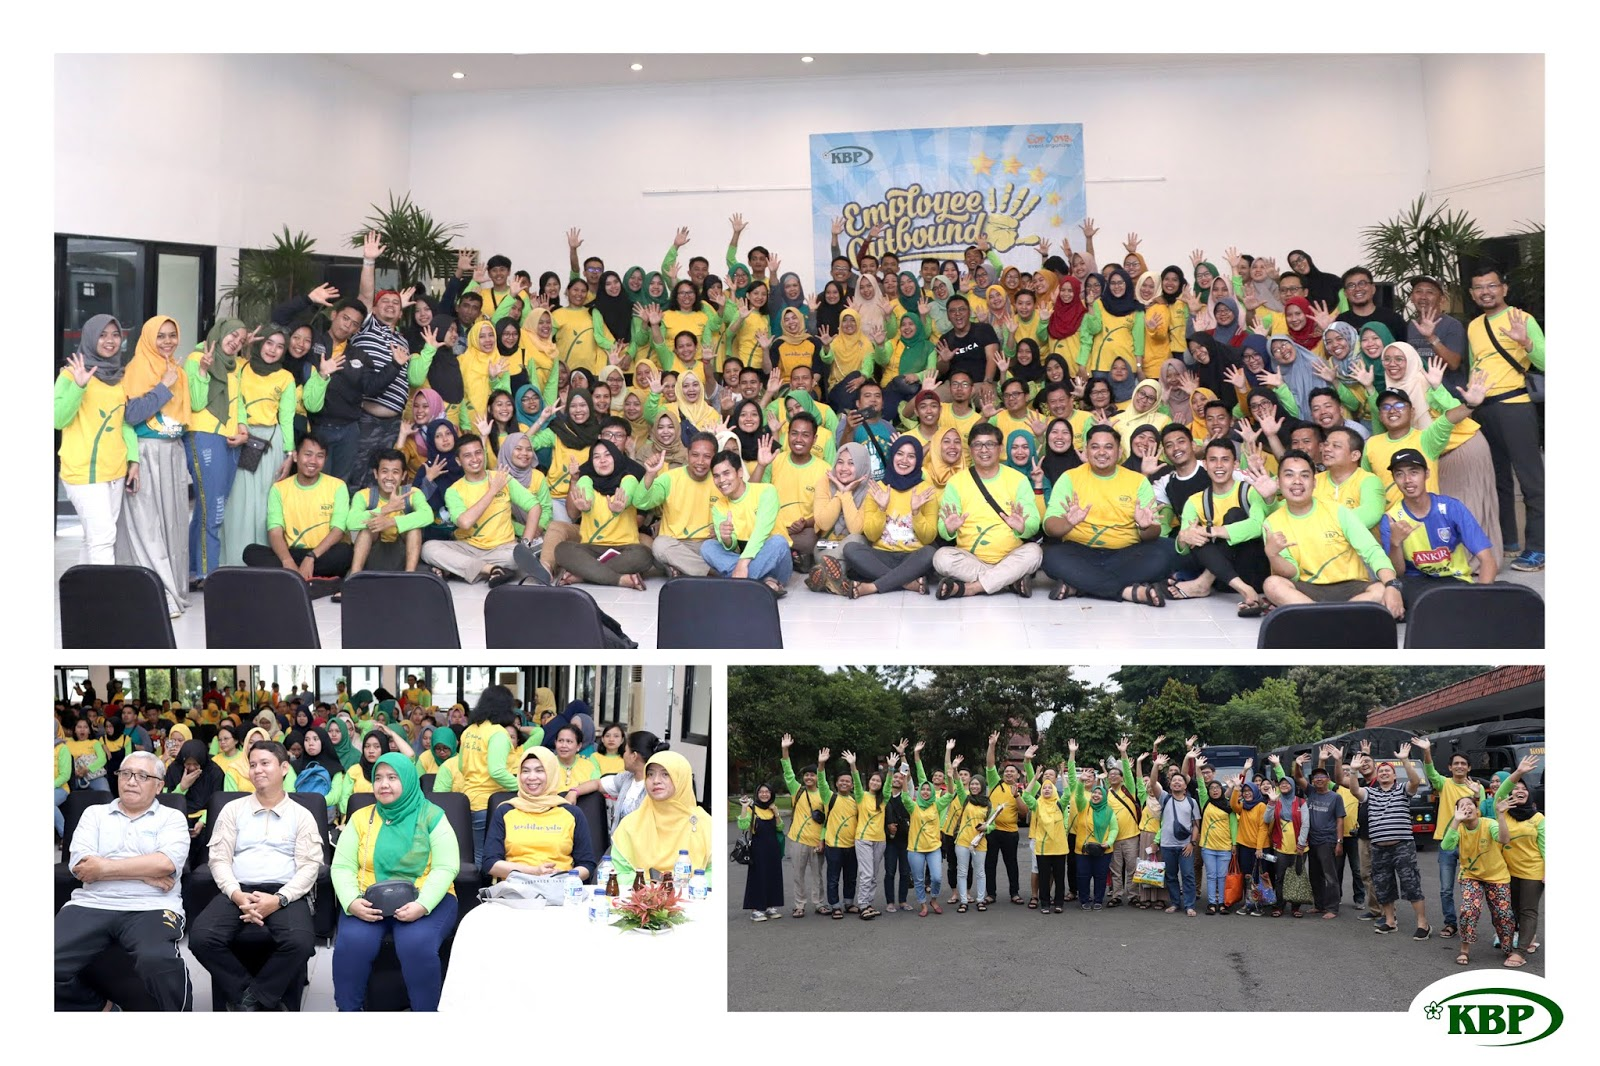 EMPLOYEE GATHERING (OUTBOUND & RAFTING) BATCH 1 2019 RS KARYA BHAKTI PRATIWI IN CARINGIN